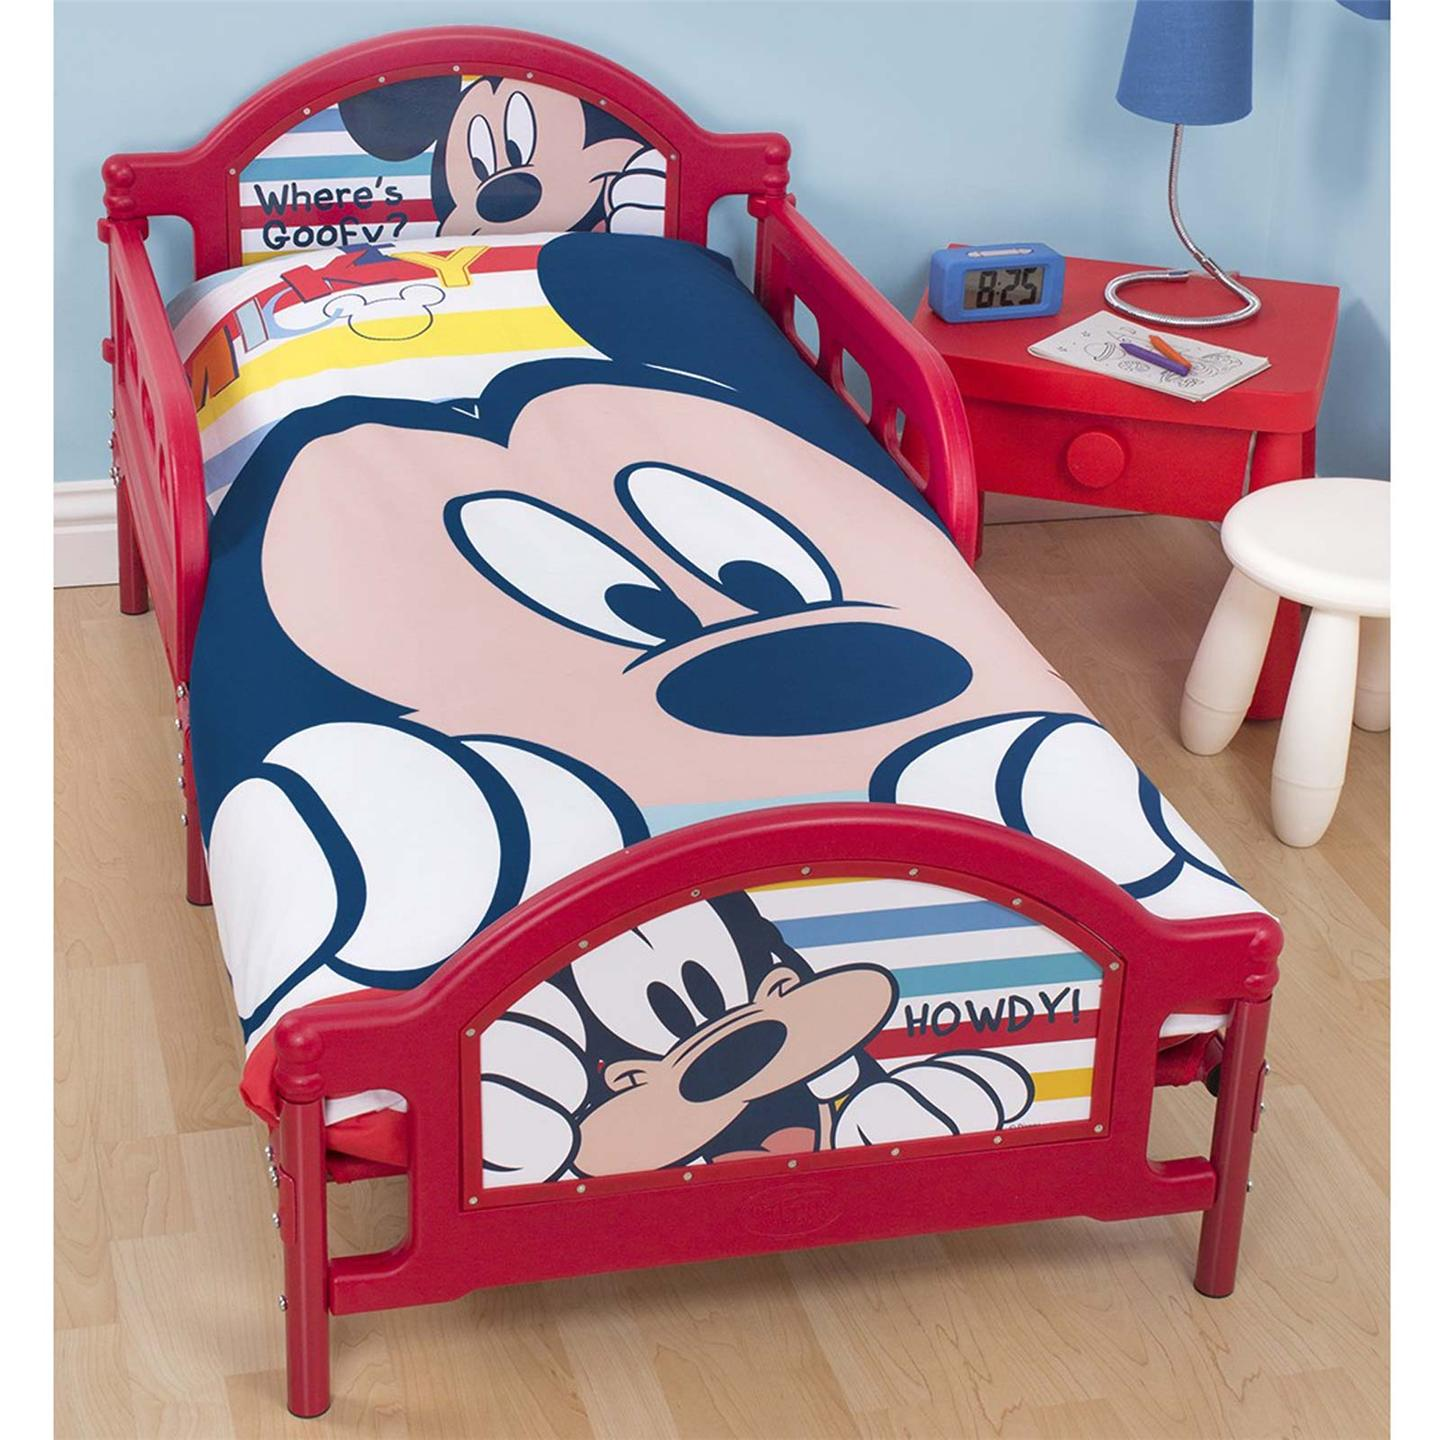 kinderbett bett micky maus play junior kleinkind kind neu ebay. Black Bedroom Furniture Sets. Home Design Ideas